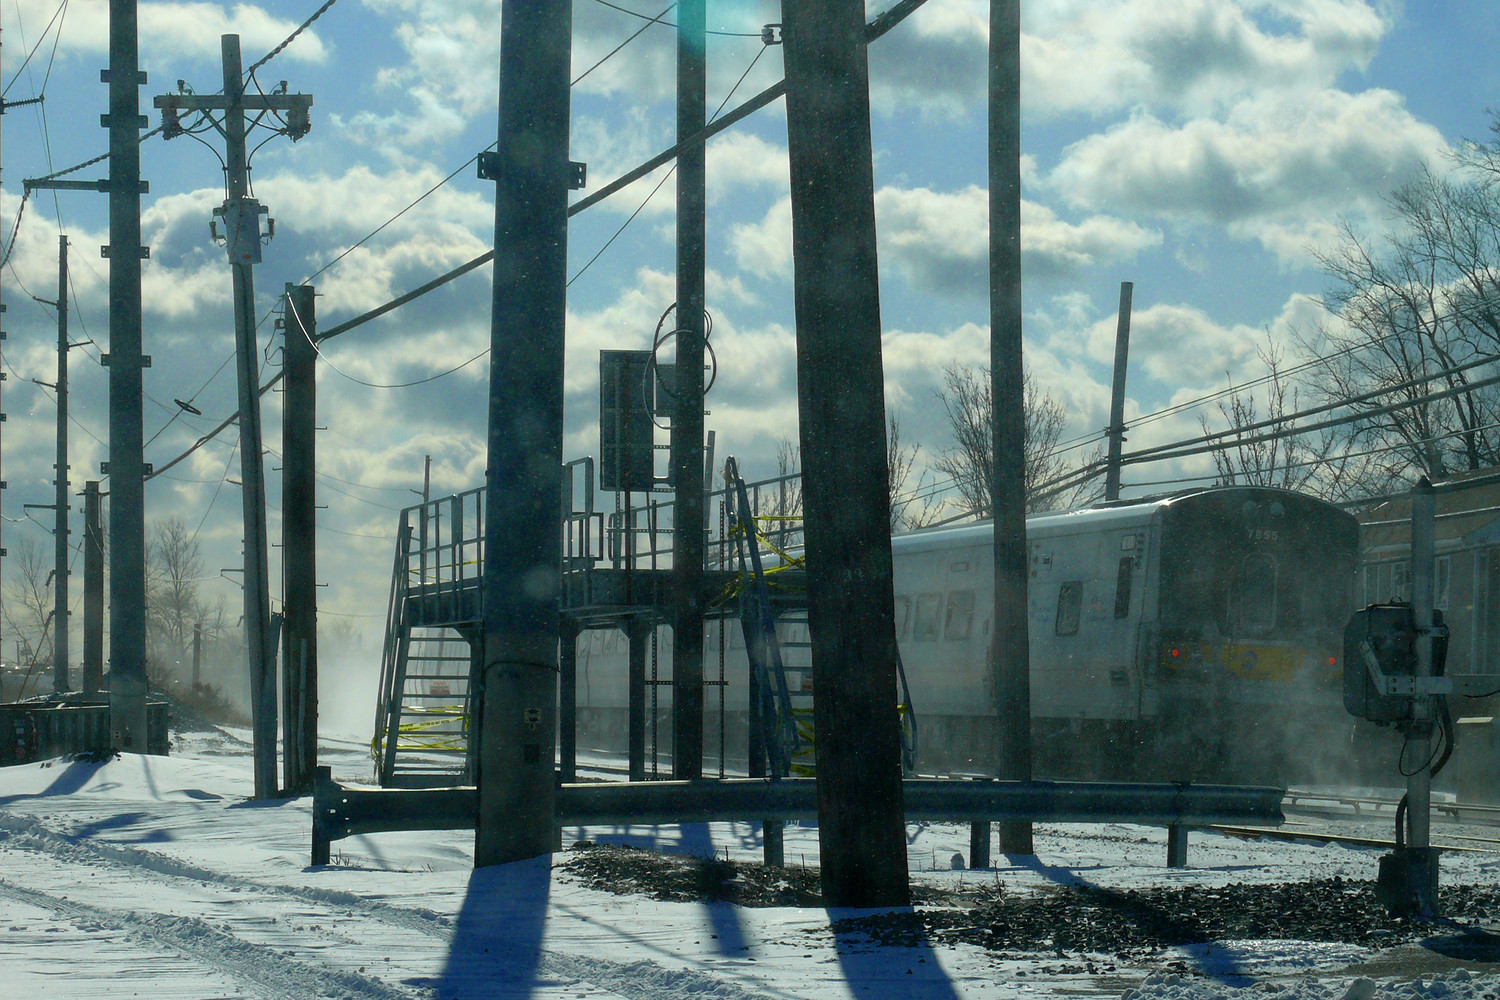 The LIRR got back underway after a series of delays due to the severe weather.